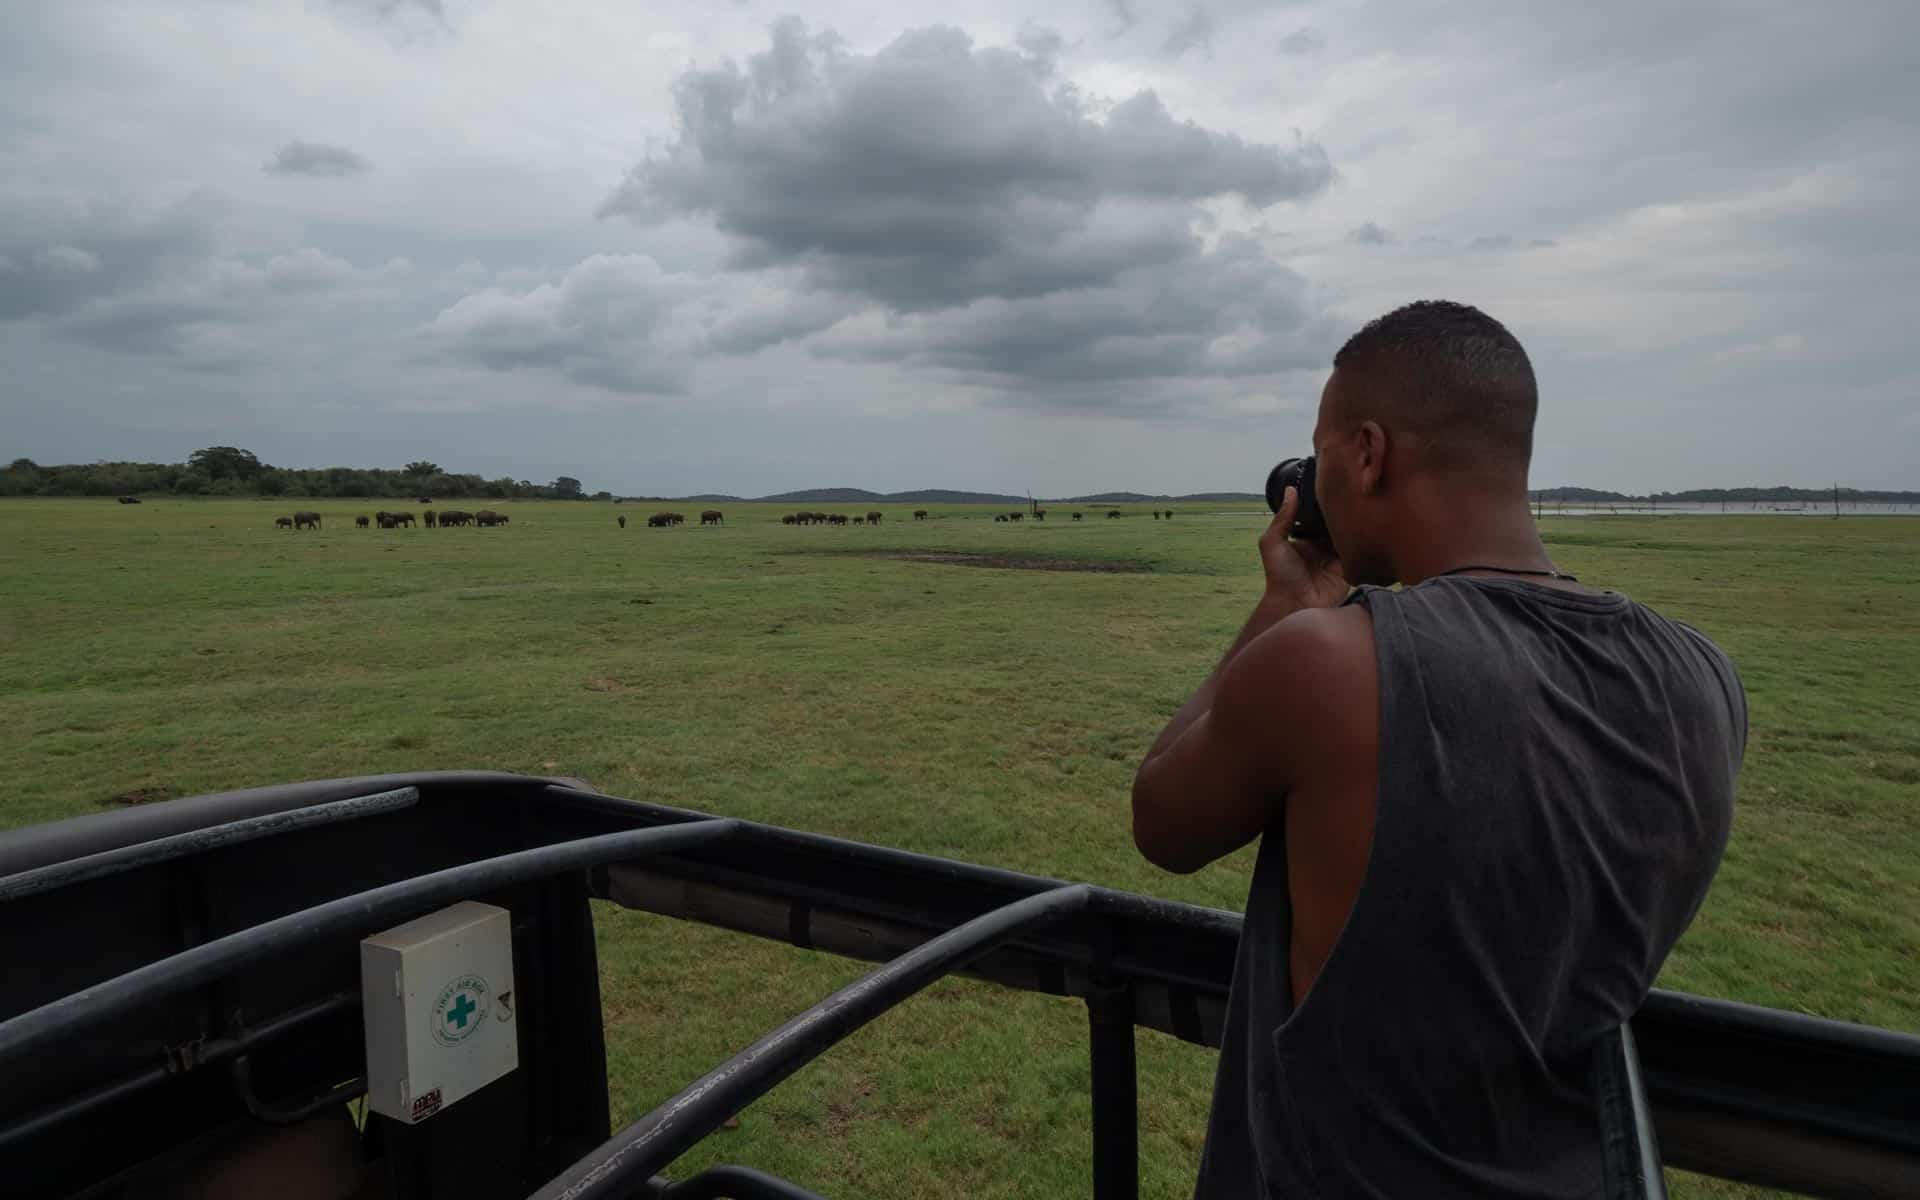 safari-sri-lanka-kaudulla-herd-elephants-photographing